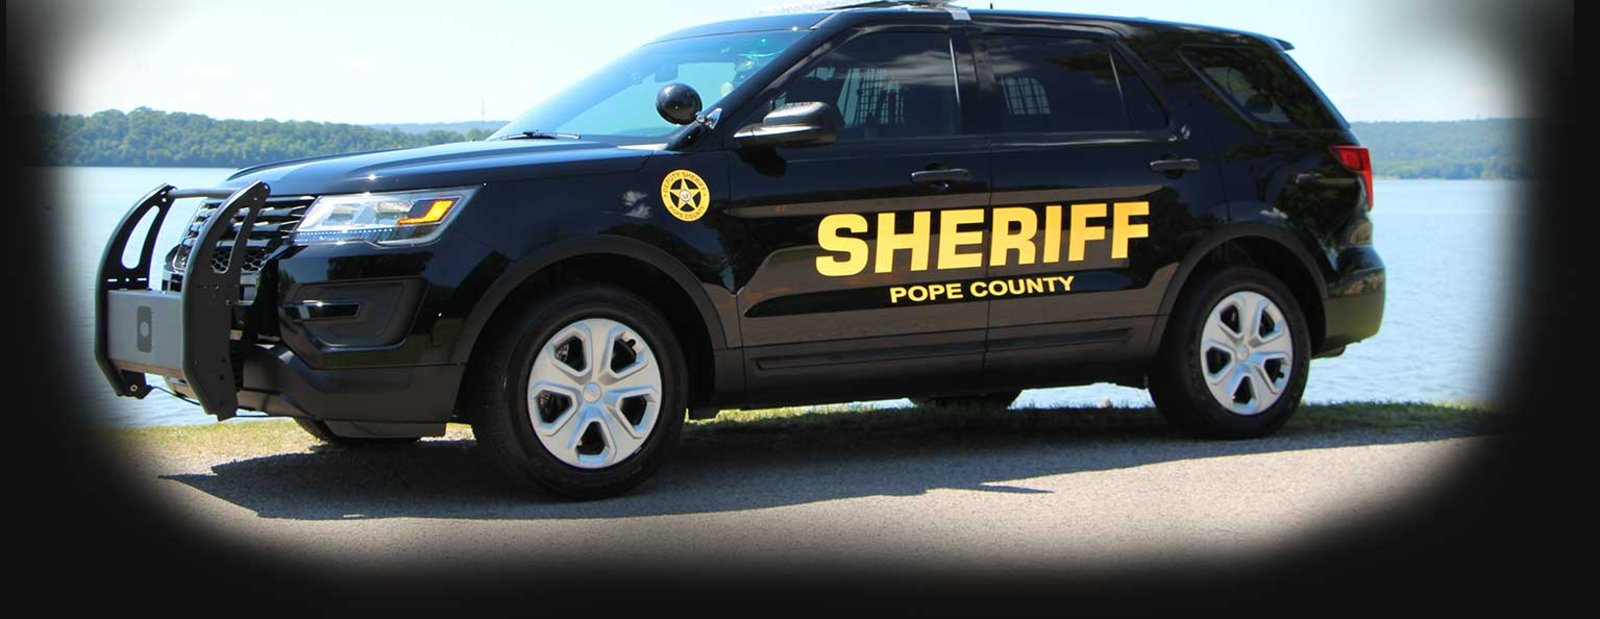 Pope County Sheriff's Office Vehicle